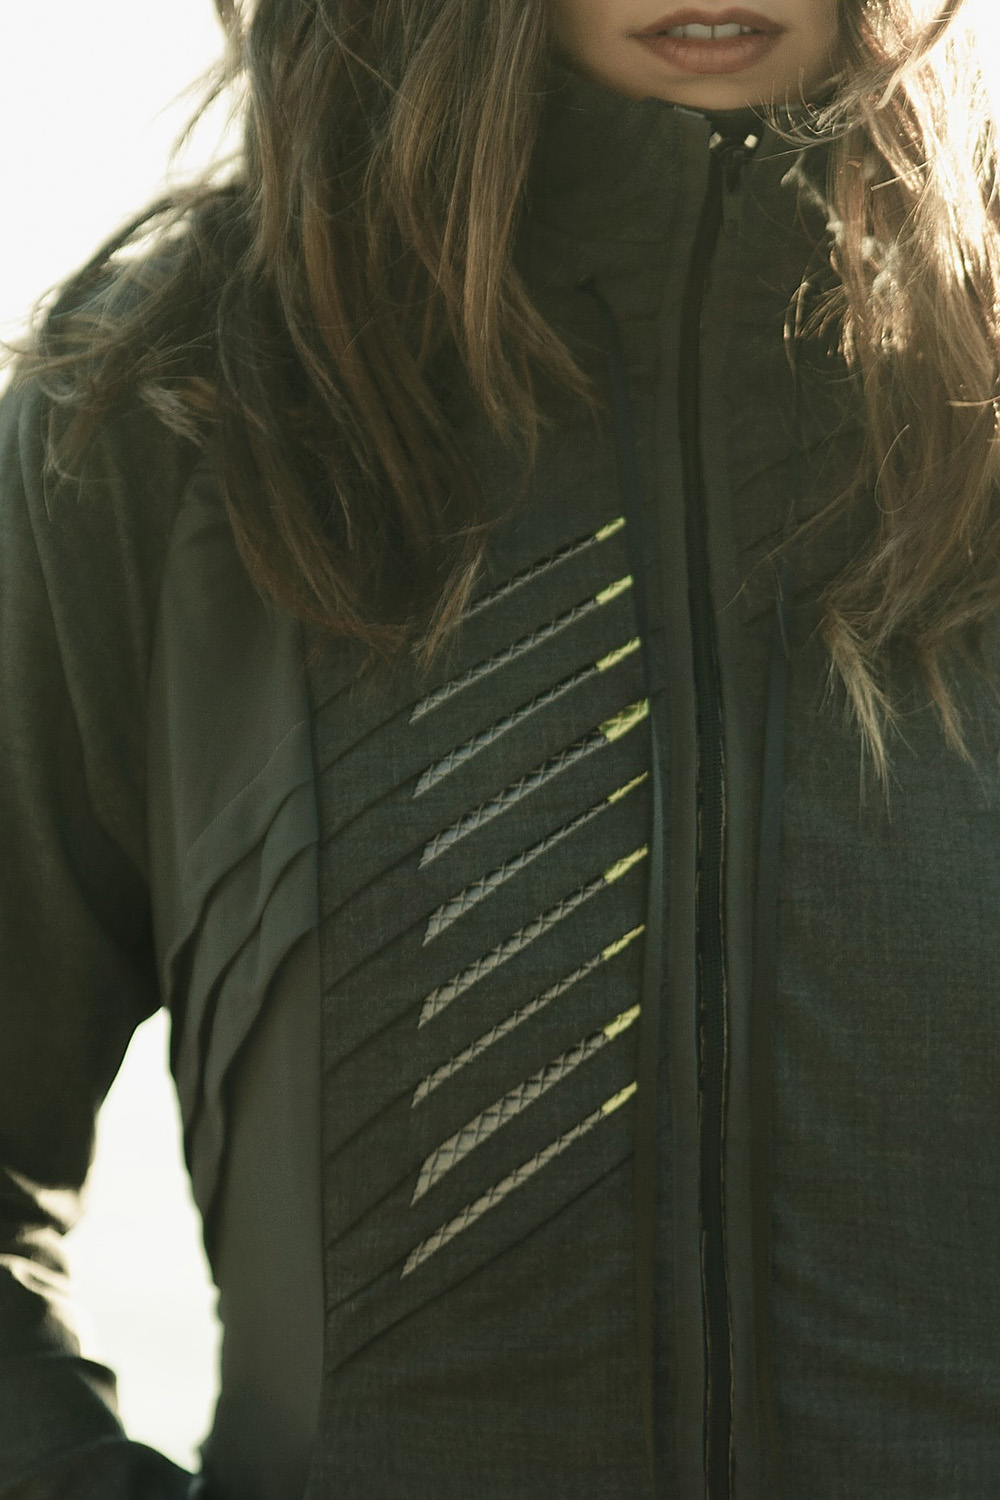 Functional Aesthetics The pleats are used as the main functional element of the garment that allow you to control the volume. Hard electronic components are replaced by embroidered etextiles that move and bend with your body in a way that is both functional and aesthetic.